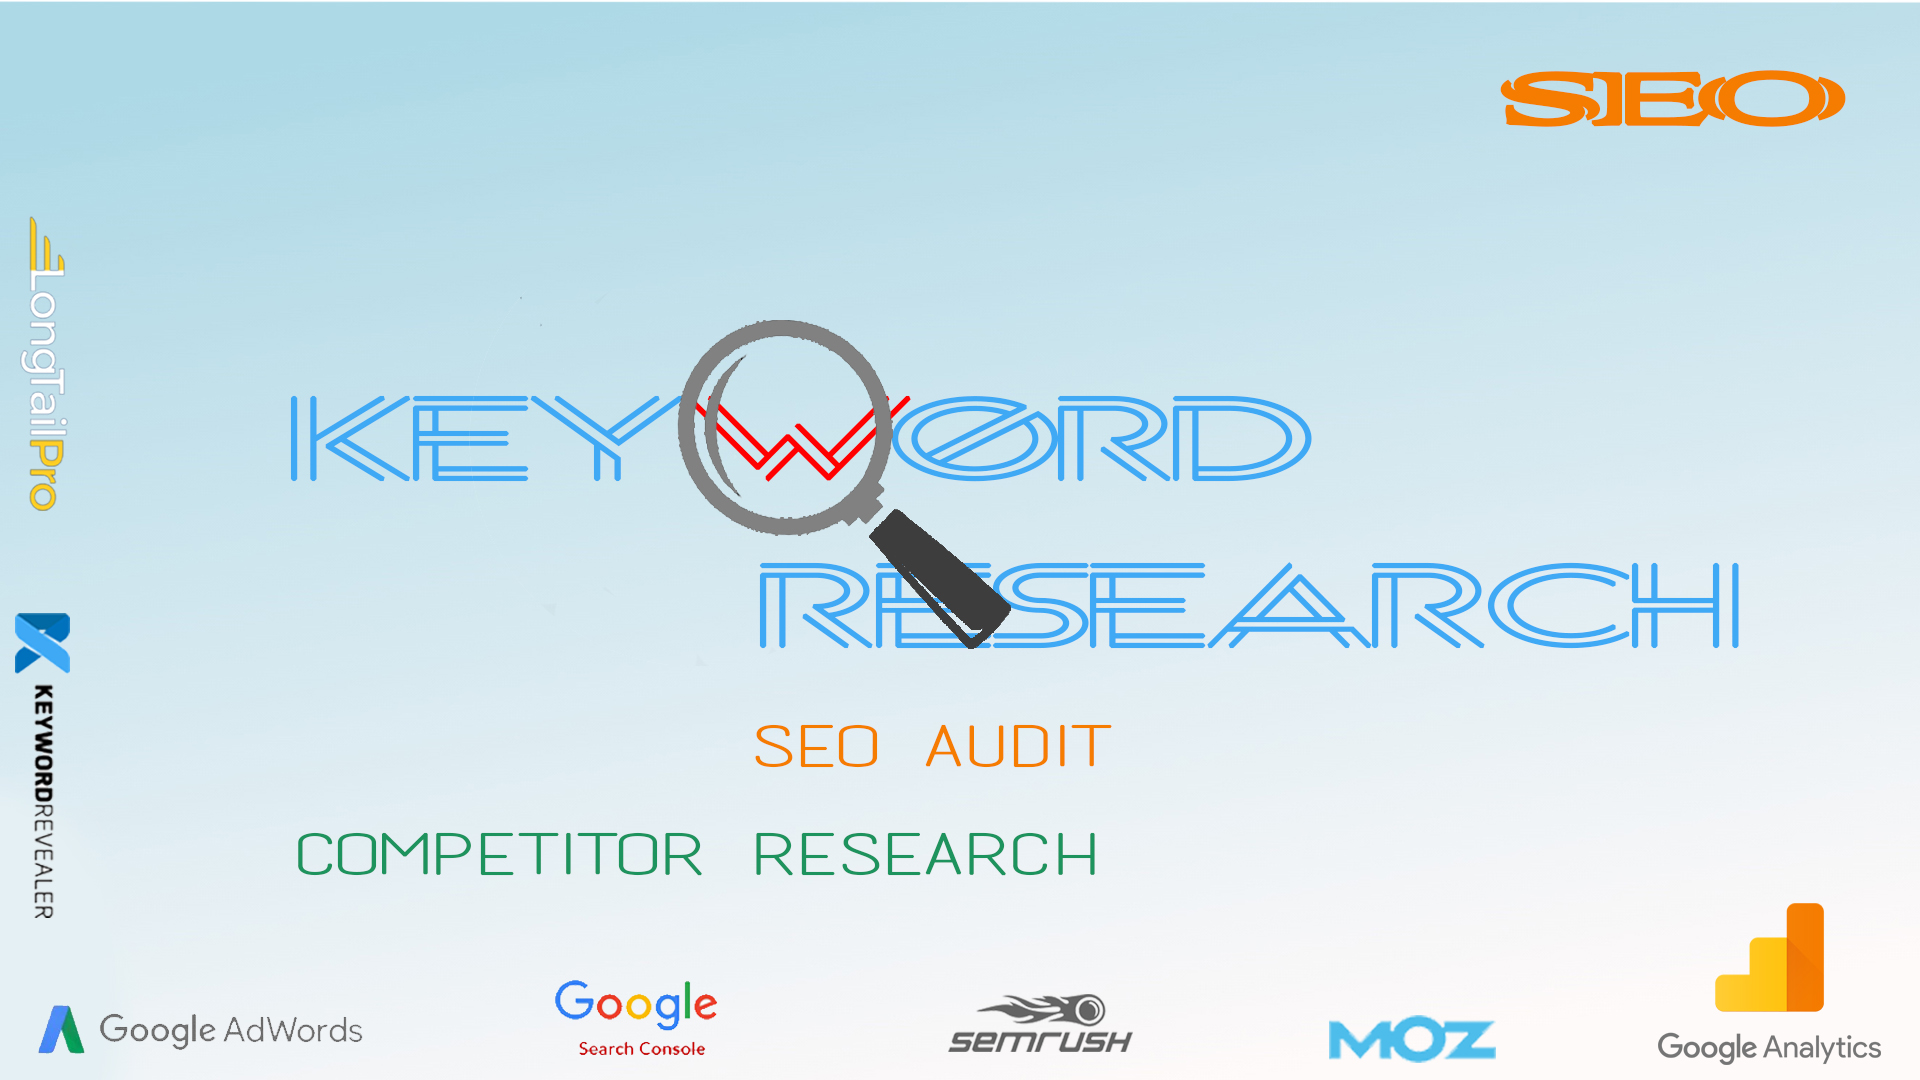 SEO Keyword and Competitor Research for your website